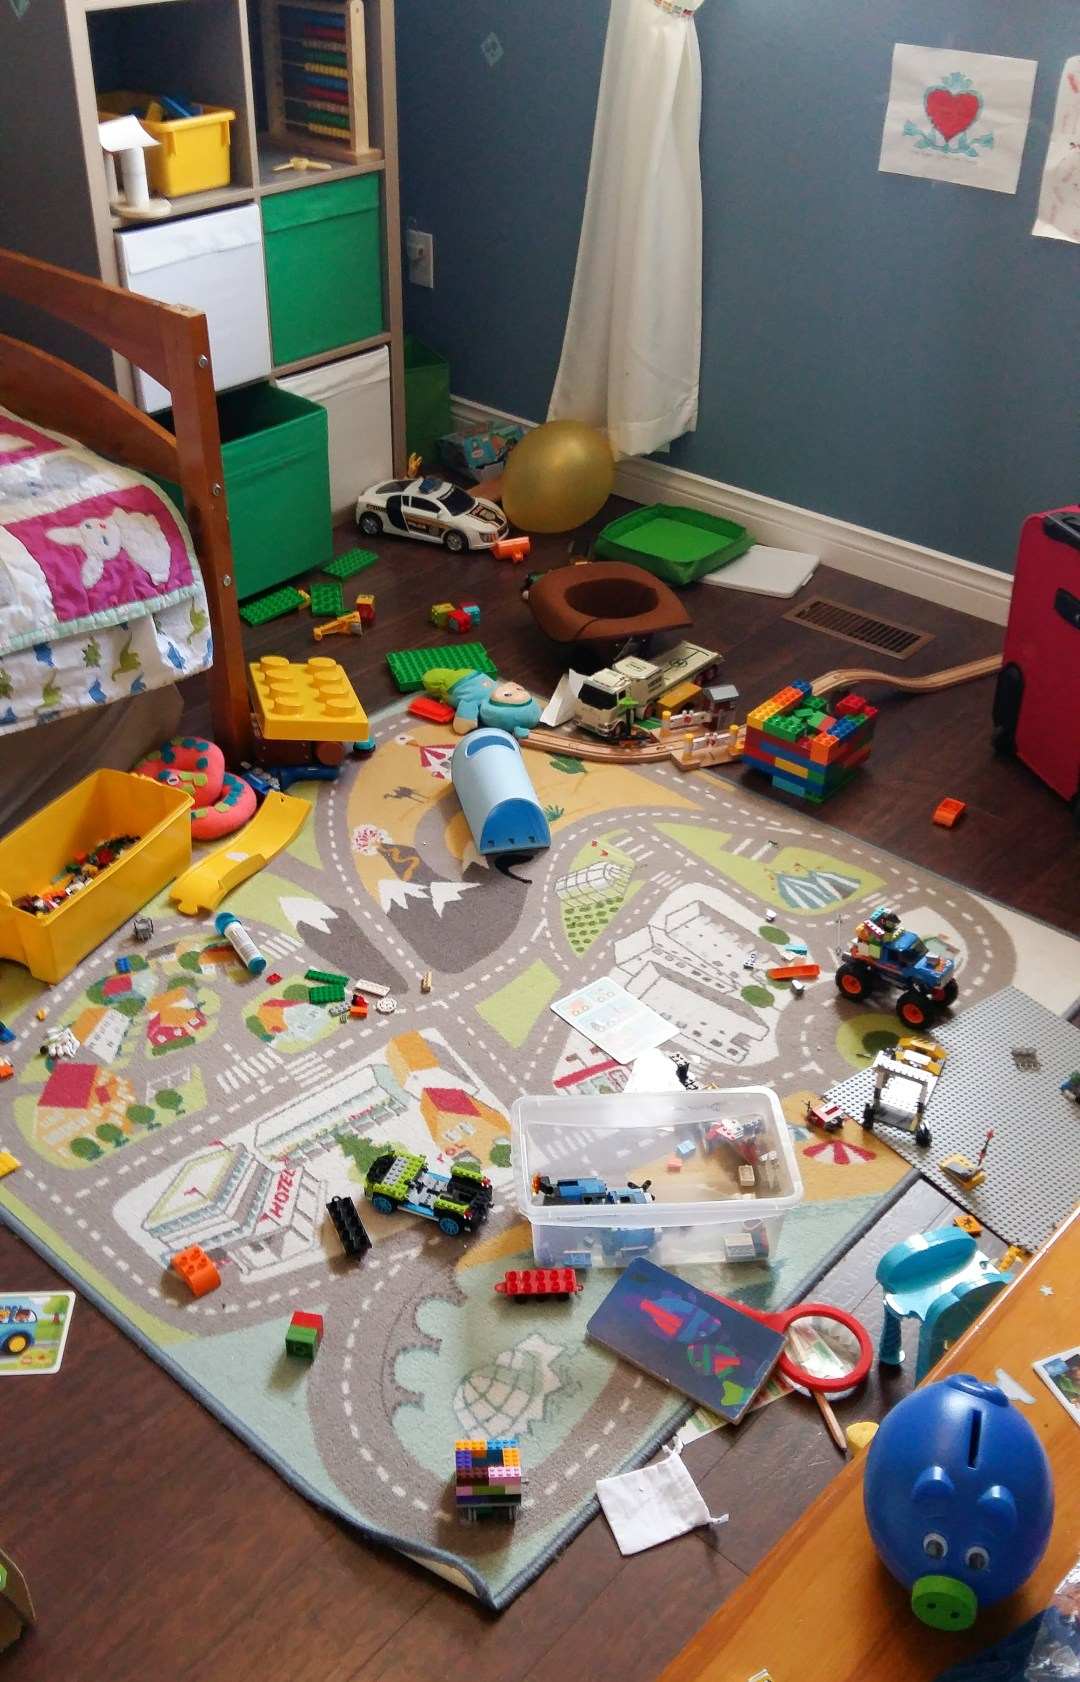 Please tell me your kid's room looks this messy too?!